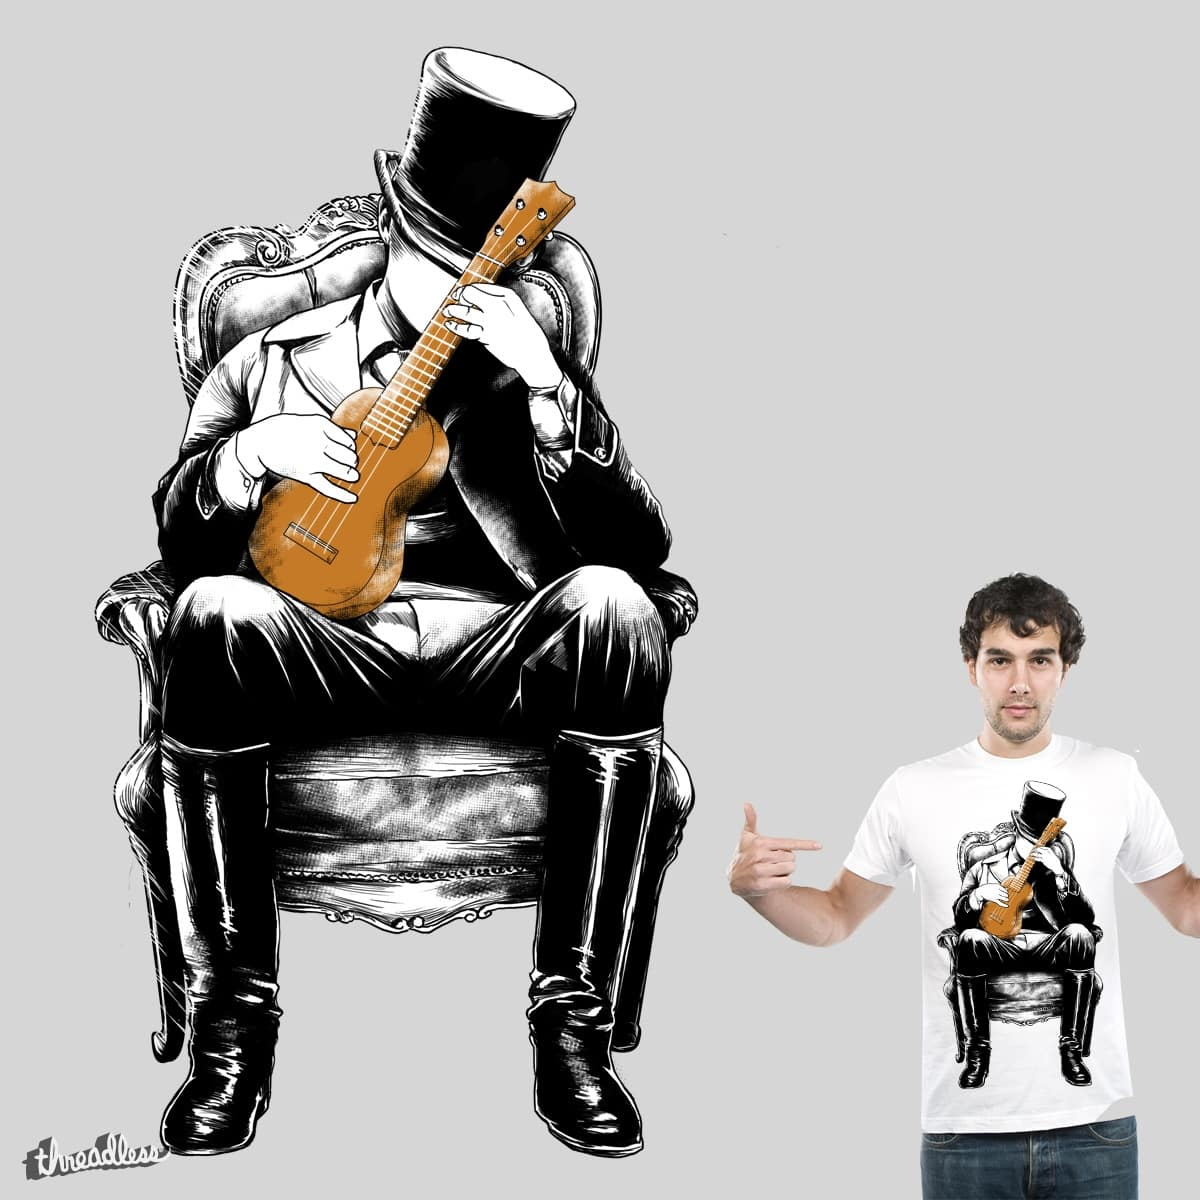 rest and play your guitar by hadee on Threadless